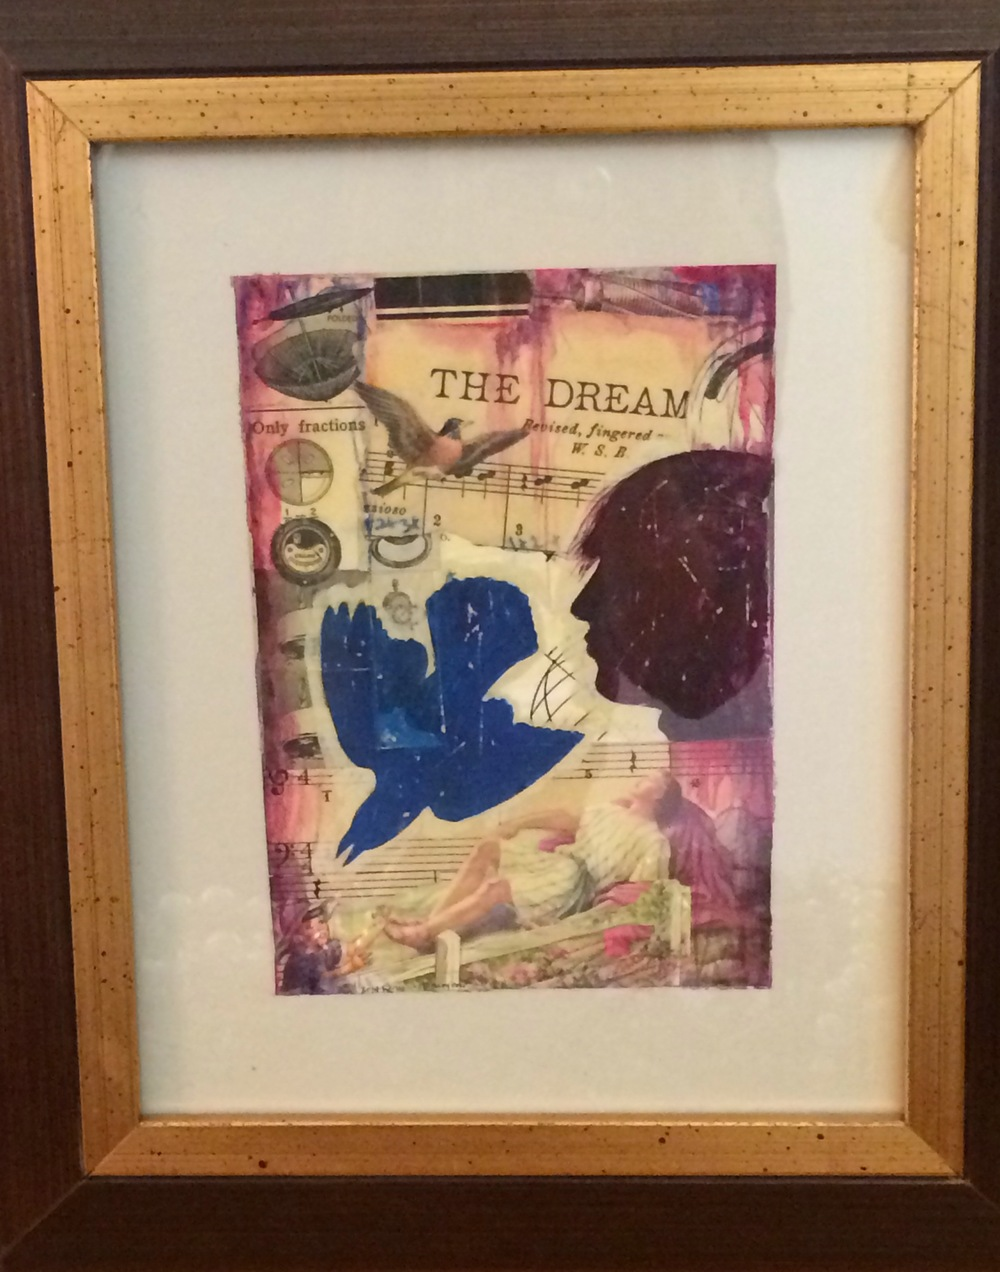 """Jacob's Dream."" Douglas Bourgeois. Mixed media collage. 5""w x 7""h framed. Value: $700.00."